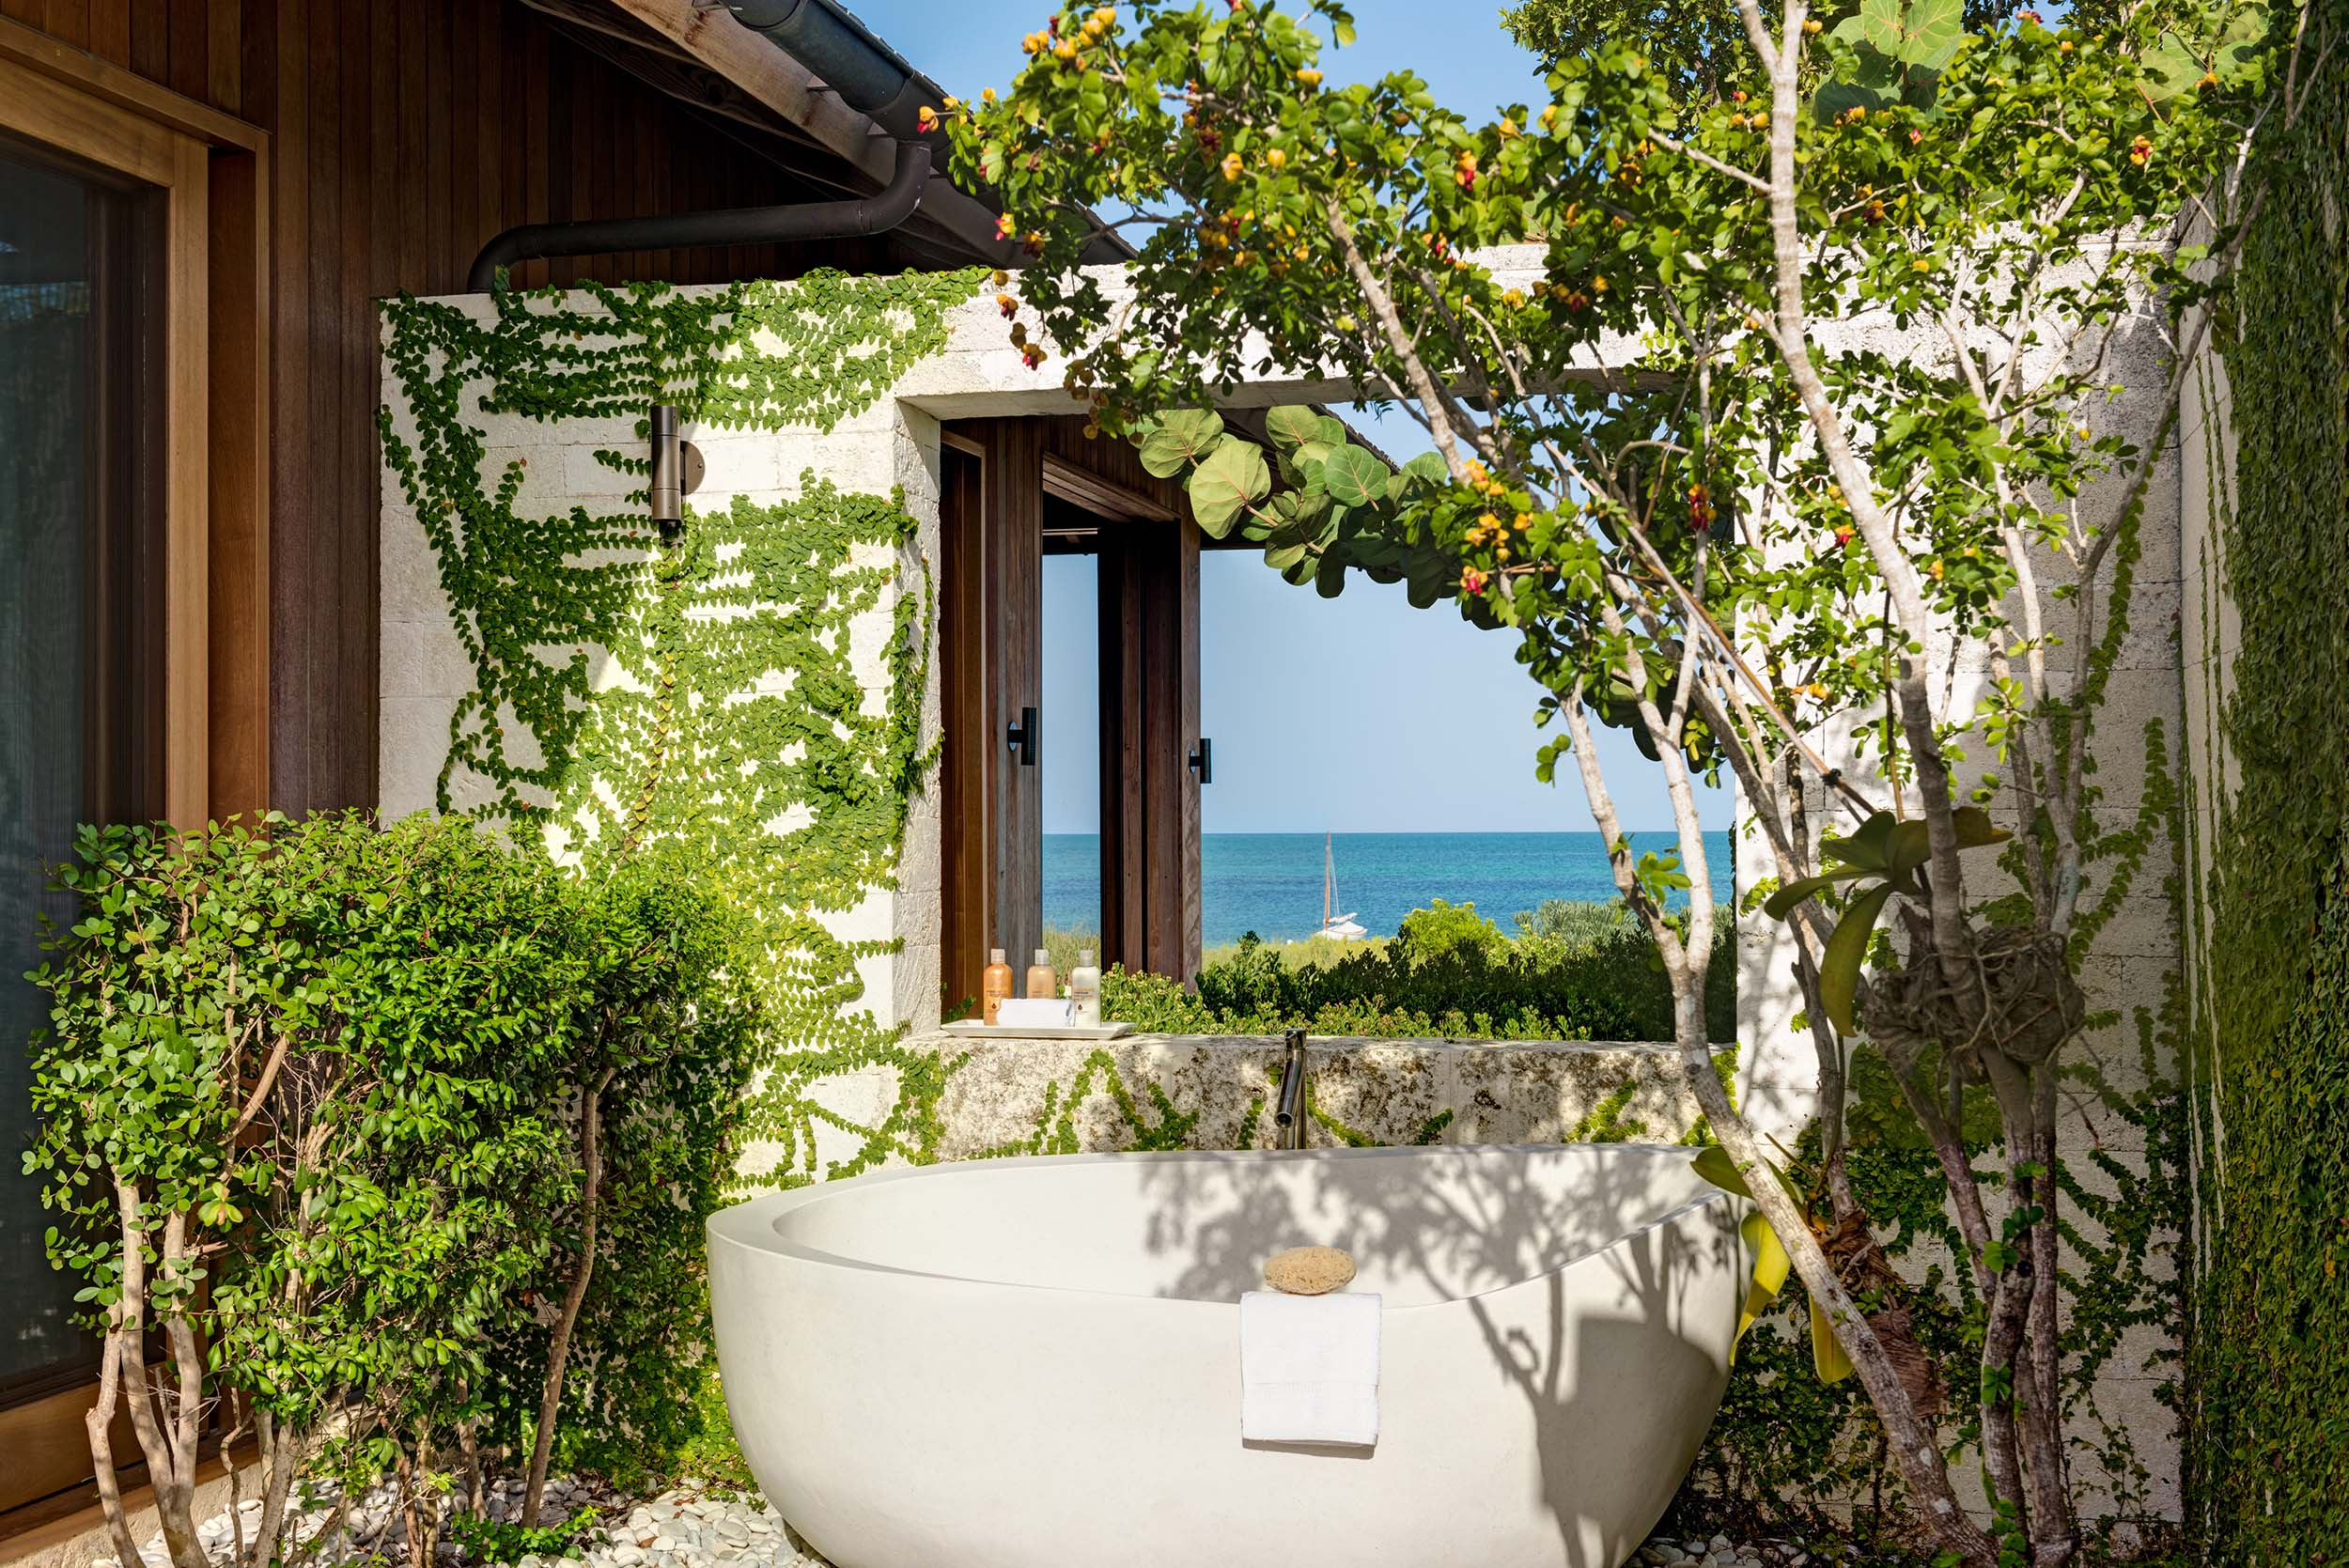 Serenity - view of one of the outdoor bath tubs